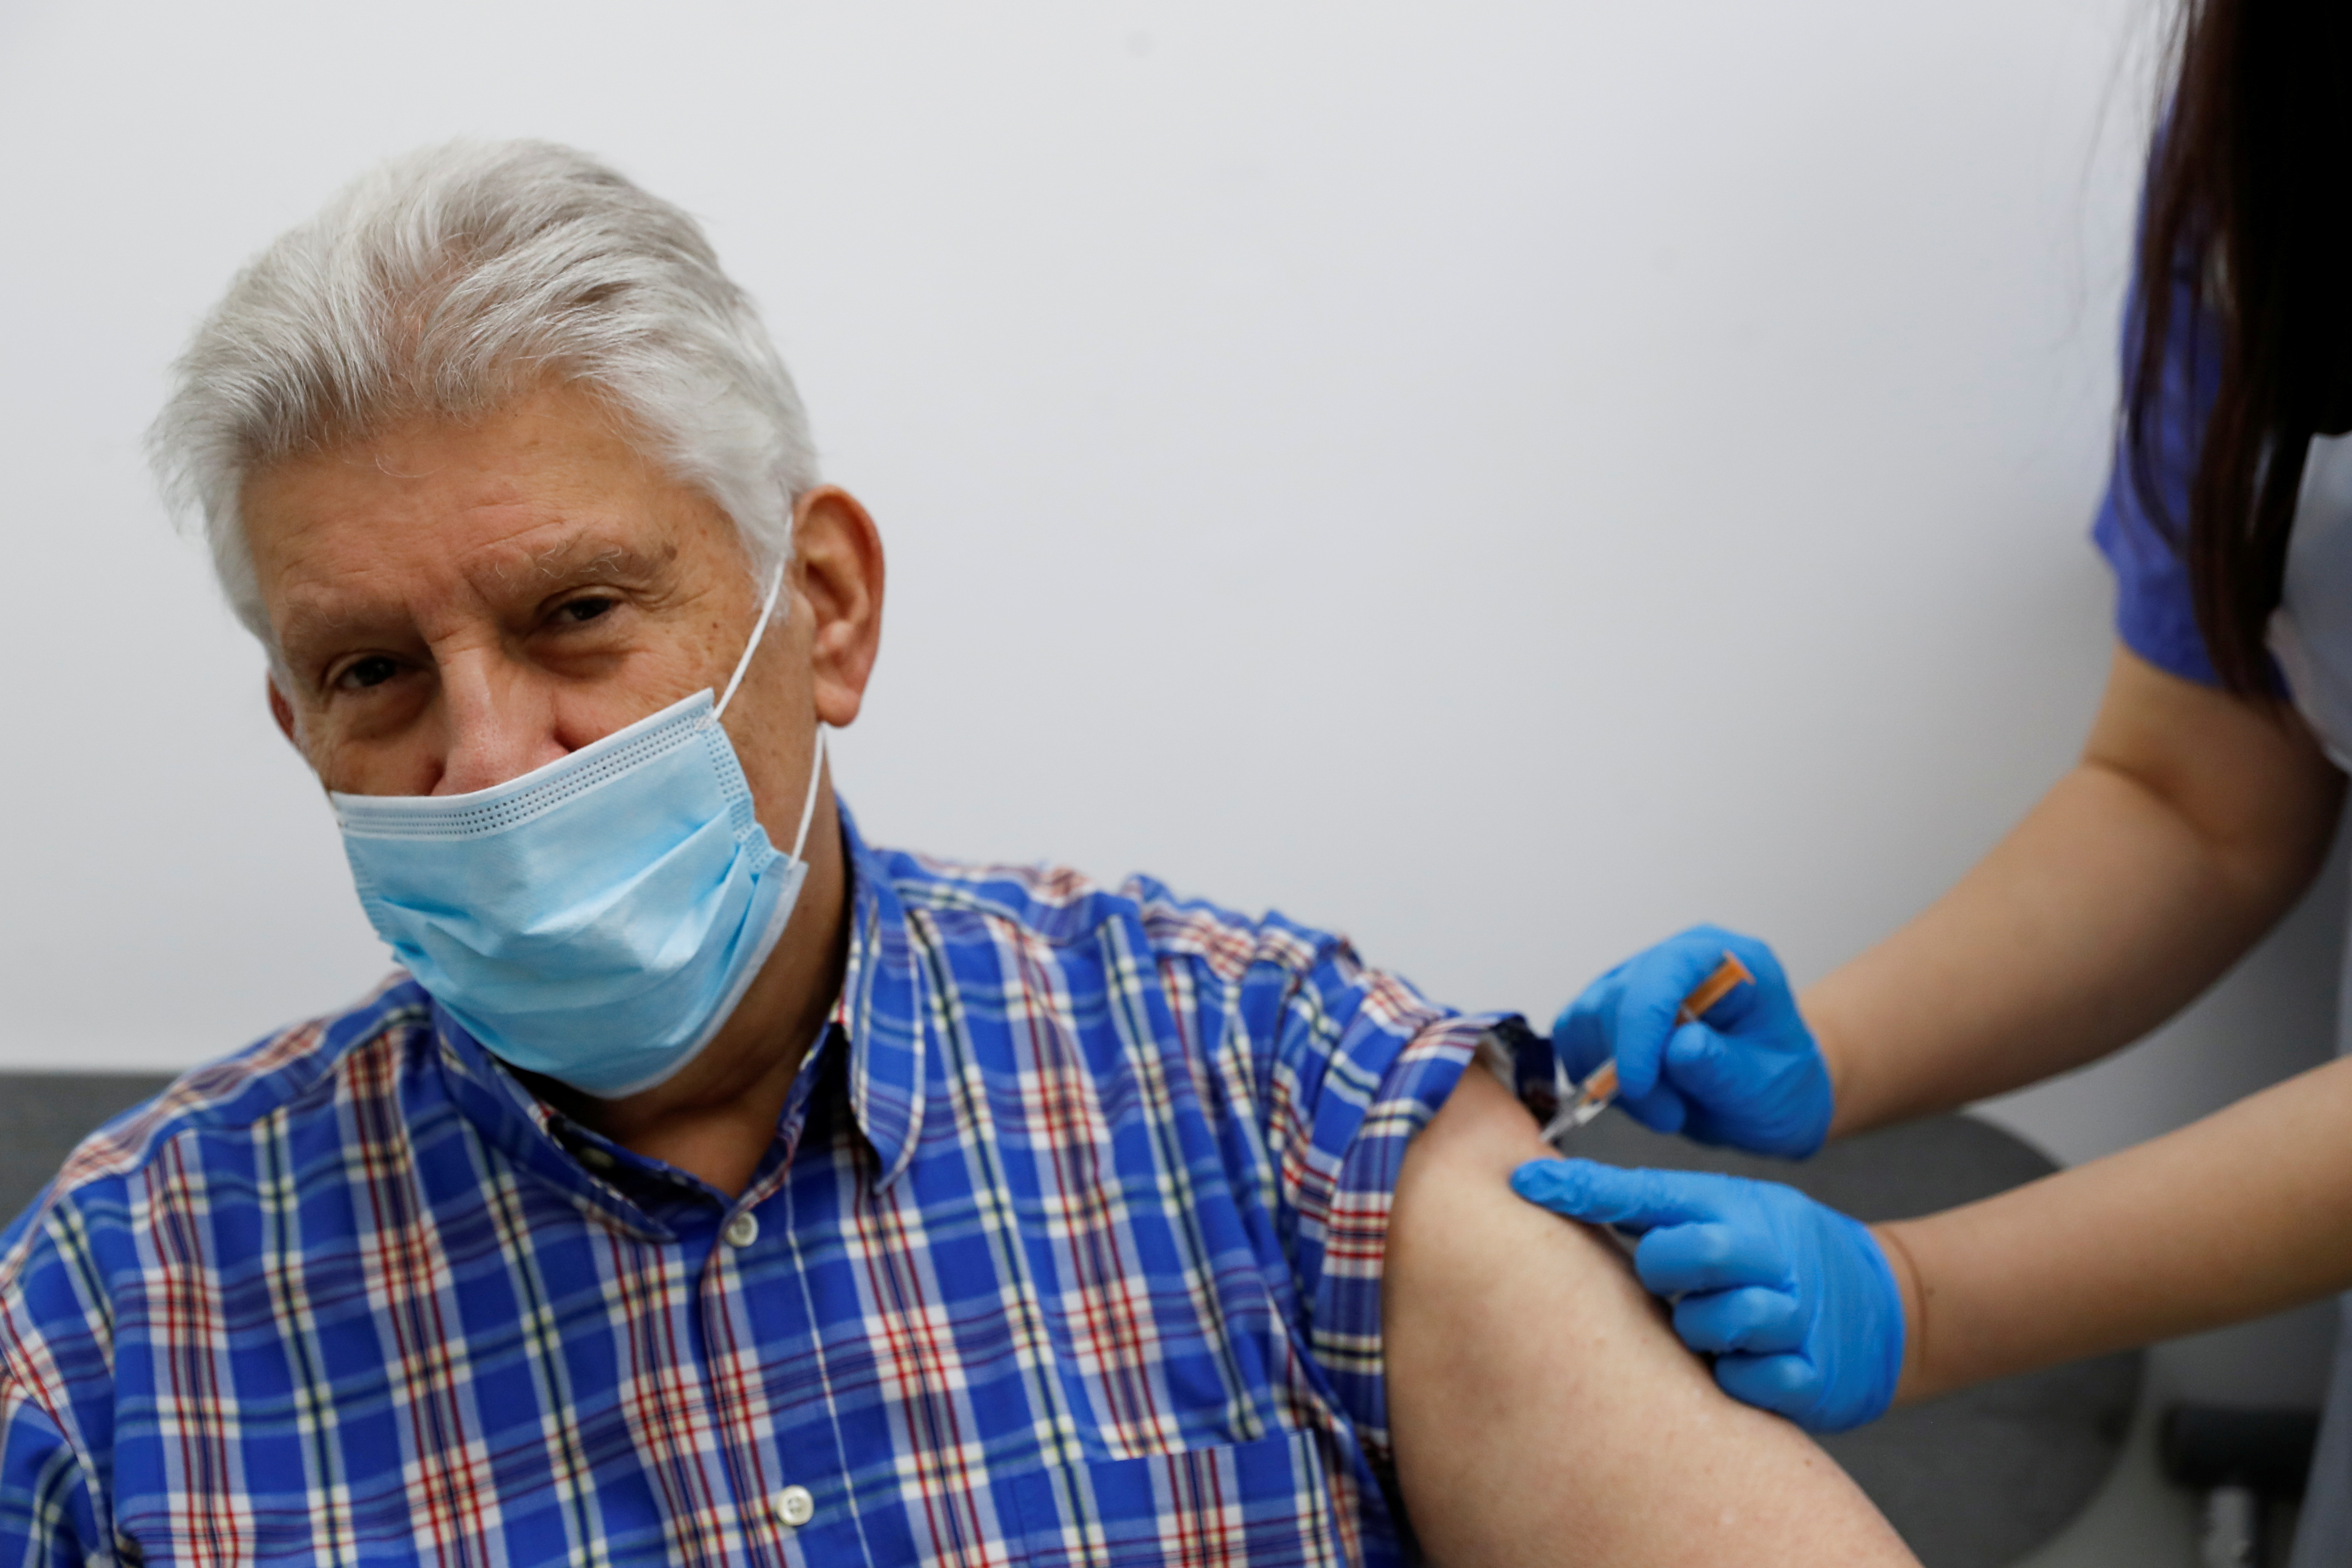 An elderly person receives a dose of the Oxford/AstraZeneca COVID-19 vaccine at Cullimore Chemist, in Edgware, London, Britain January 14, 2021. REUTERS/Paul Childs